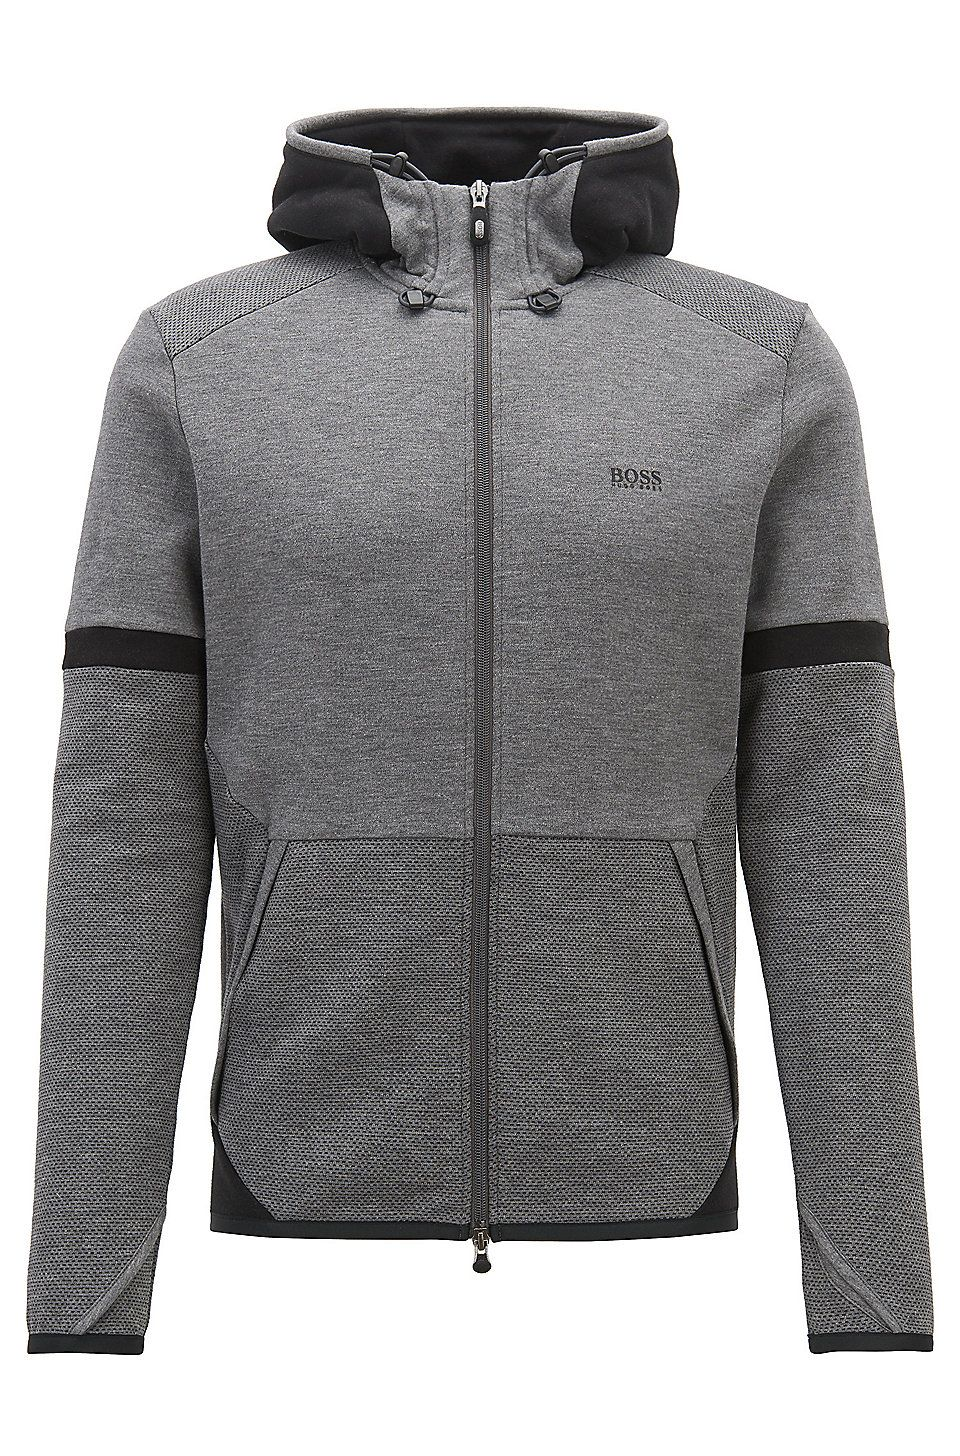 fa4fcd076 HUGO BOSS Hooded sweatshirt with two-way zip and contrast details -  Anthracite Tracksuits from BOSS for Men in the official HUGO BOSS Online  Store free ...